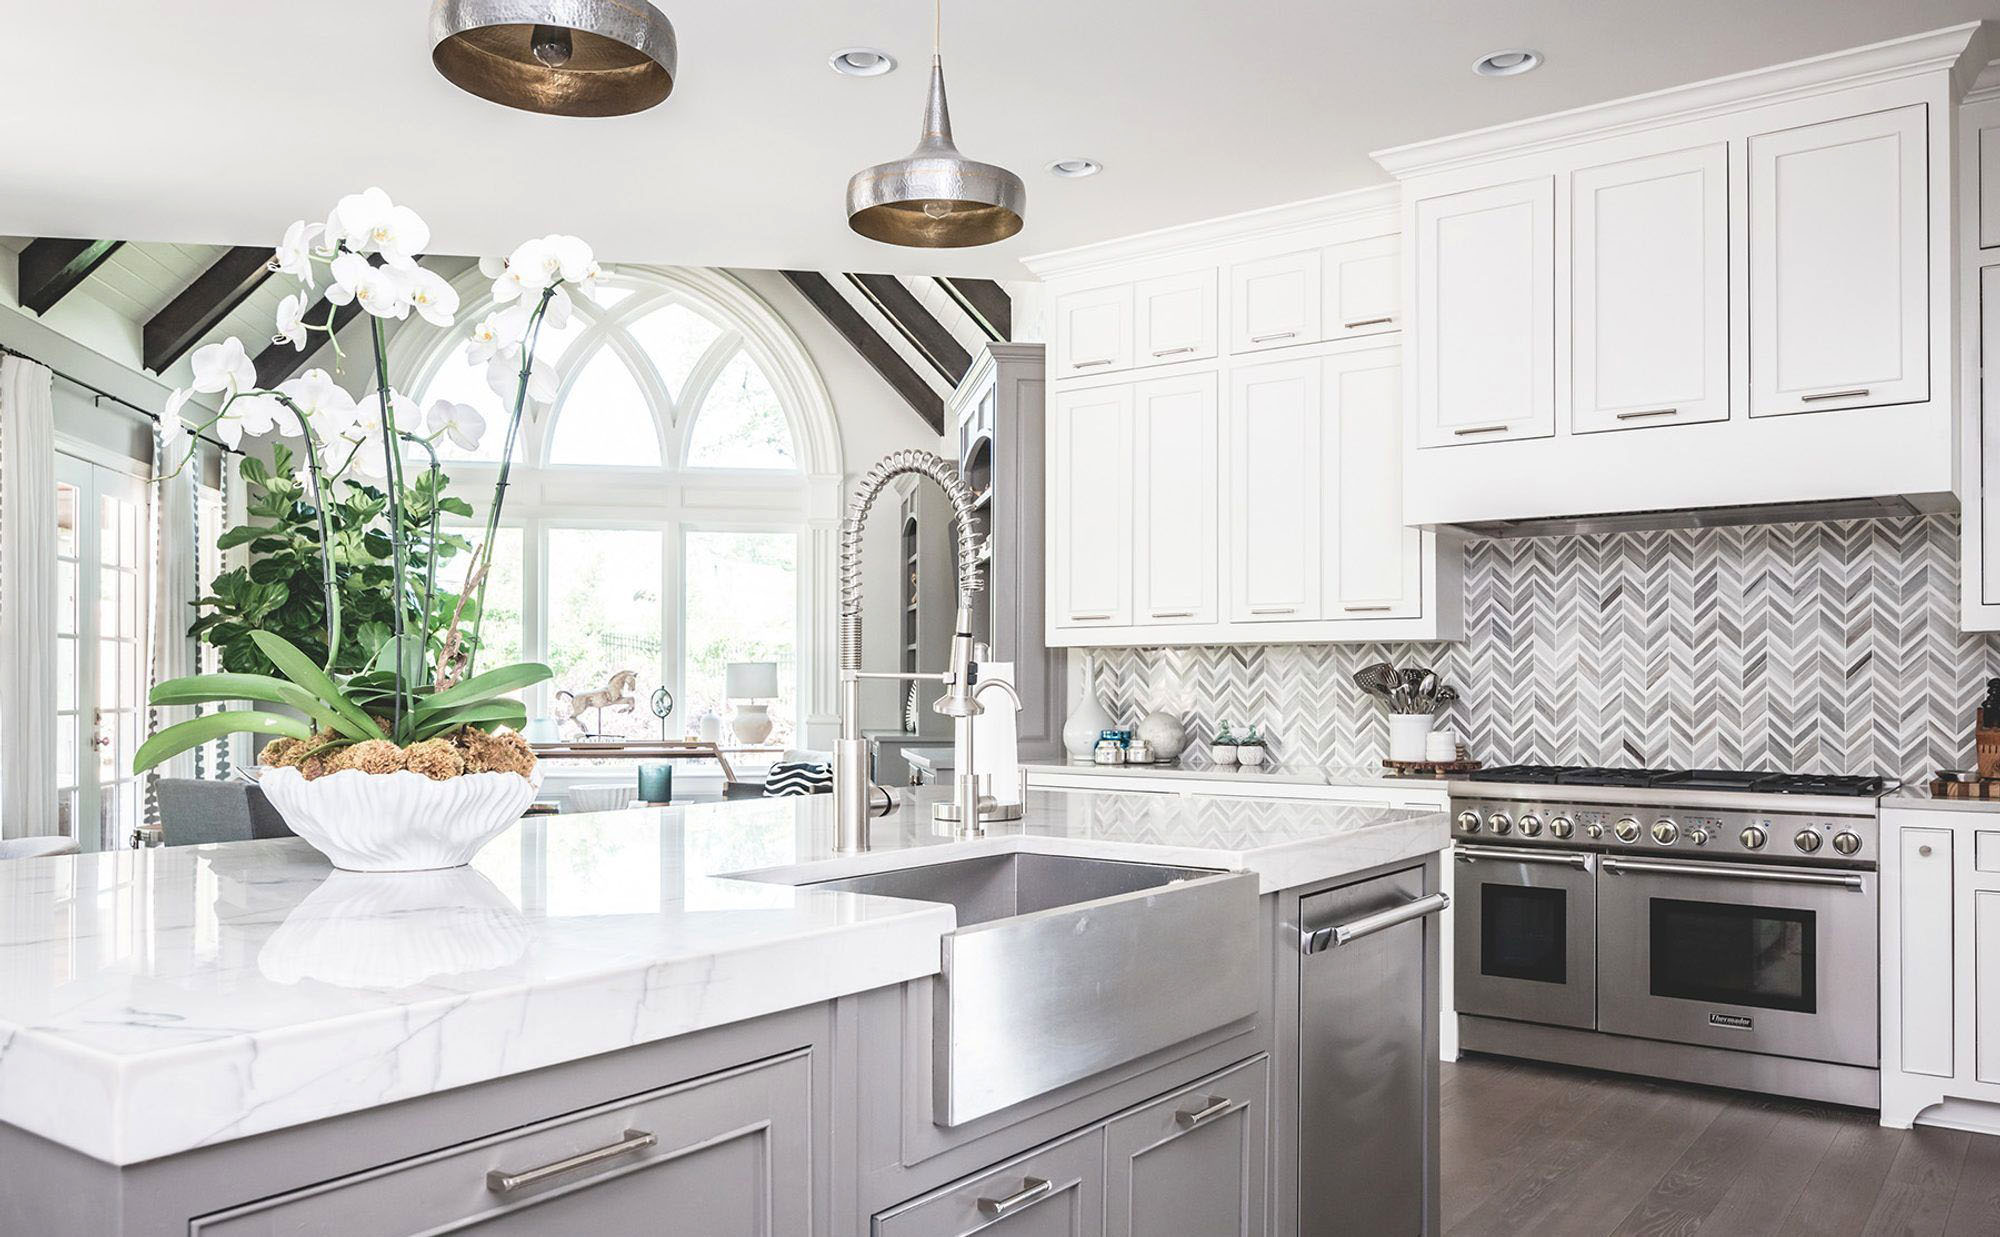 Fabulous white and gray kitchen with two tone cabinet design. White and pale gray with matching gray faux wood floors, marble quartz countertops and a beautiful backsplash.